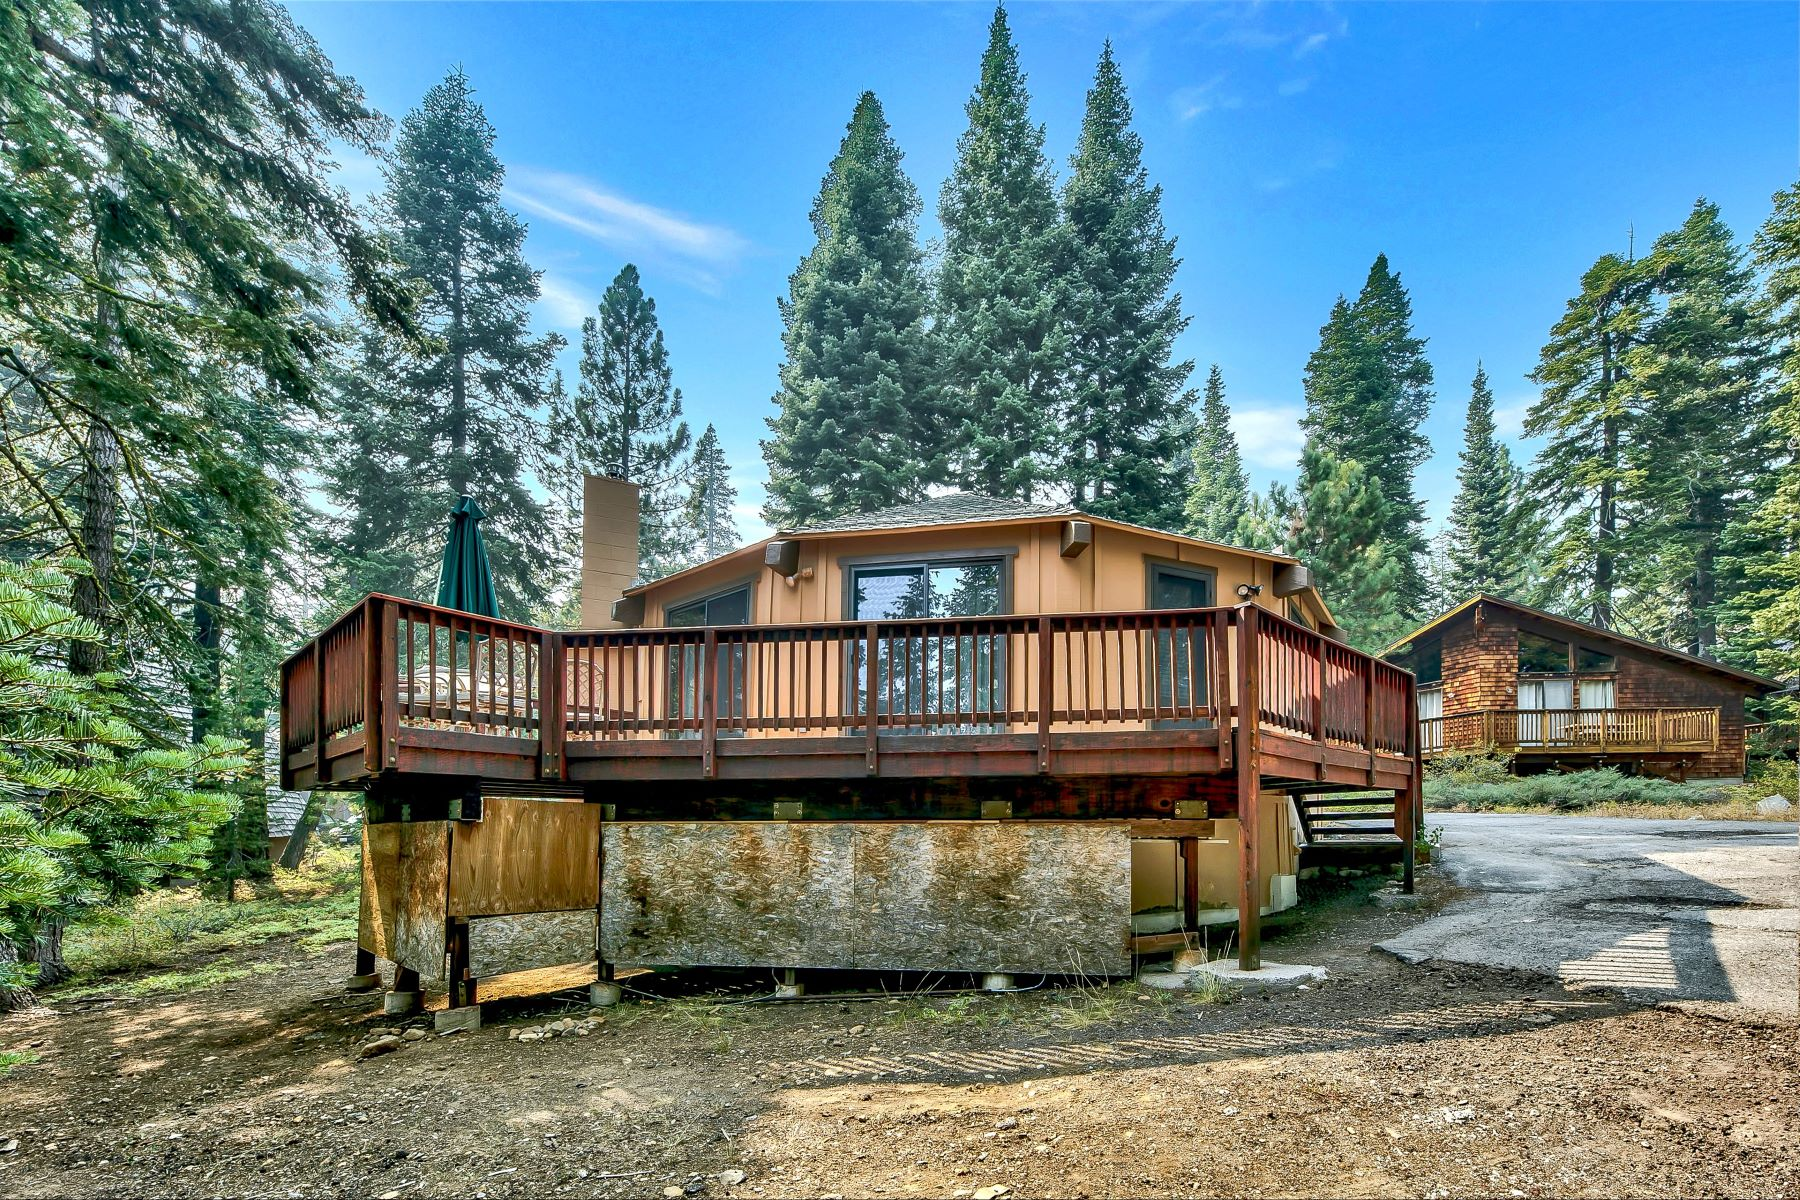 Additional photo for property listing at Unique Cabin in the Woods 450 John Cain Tahoe City, California 96145 United States